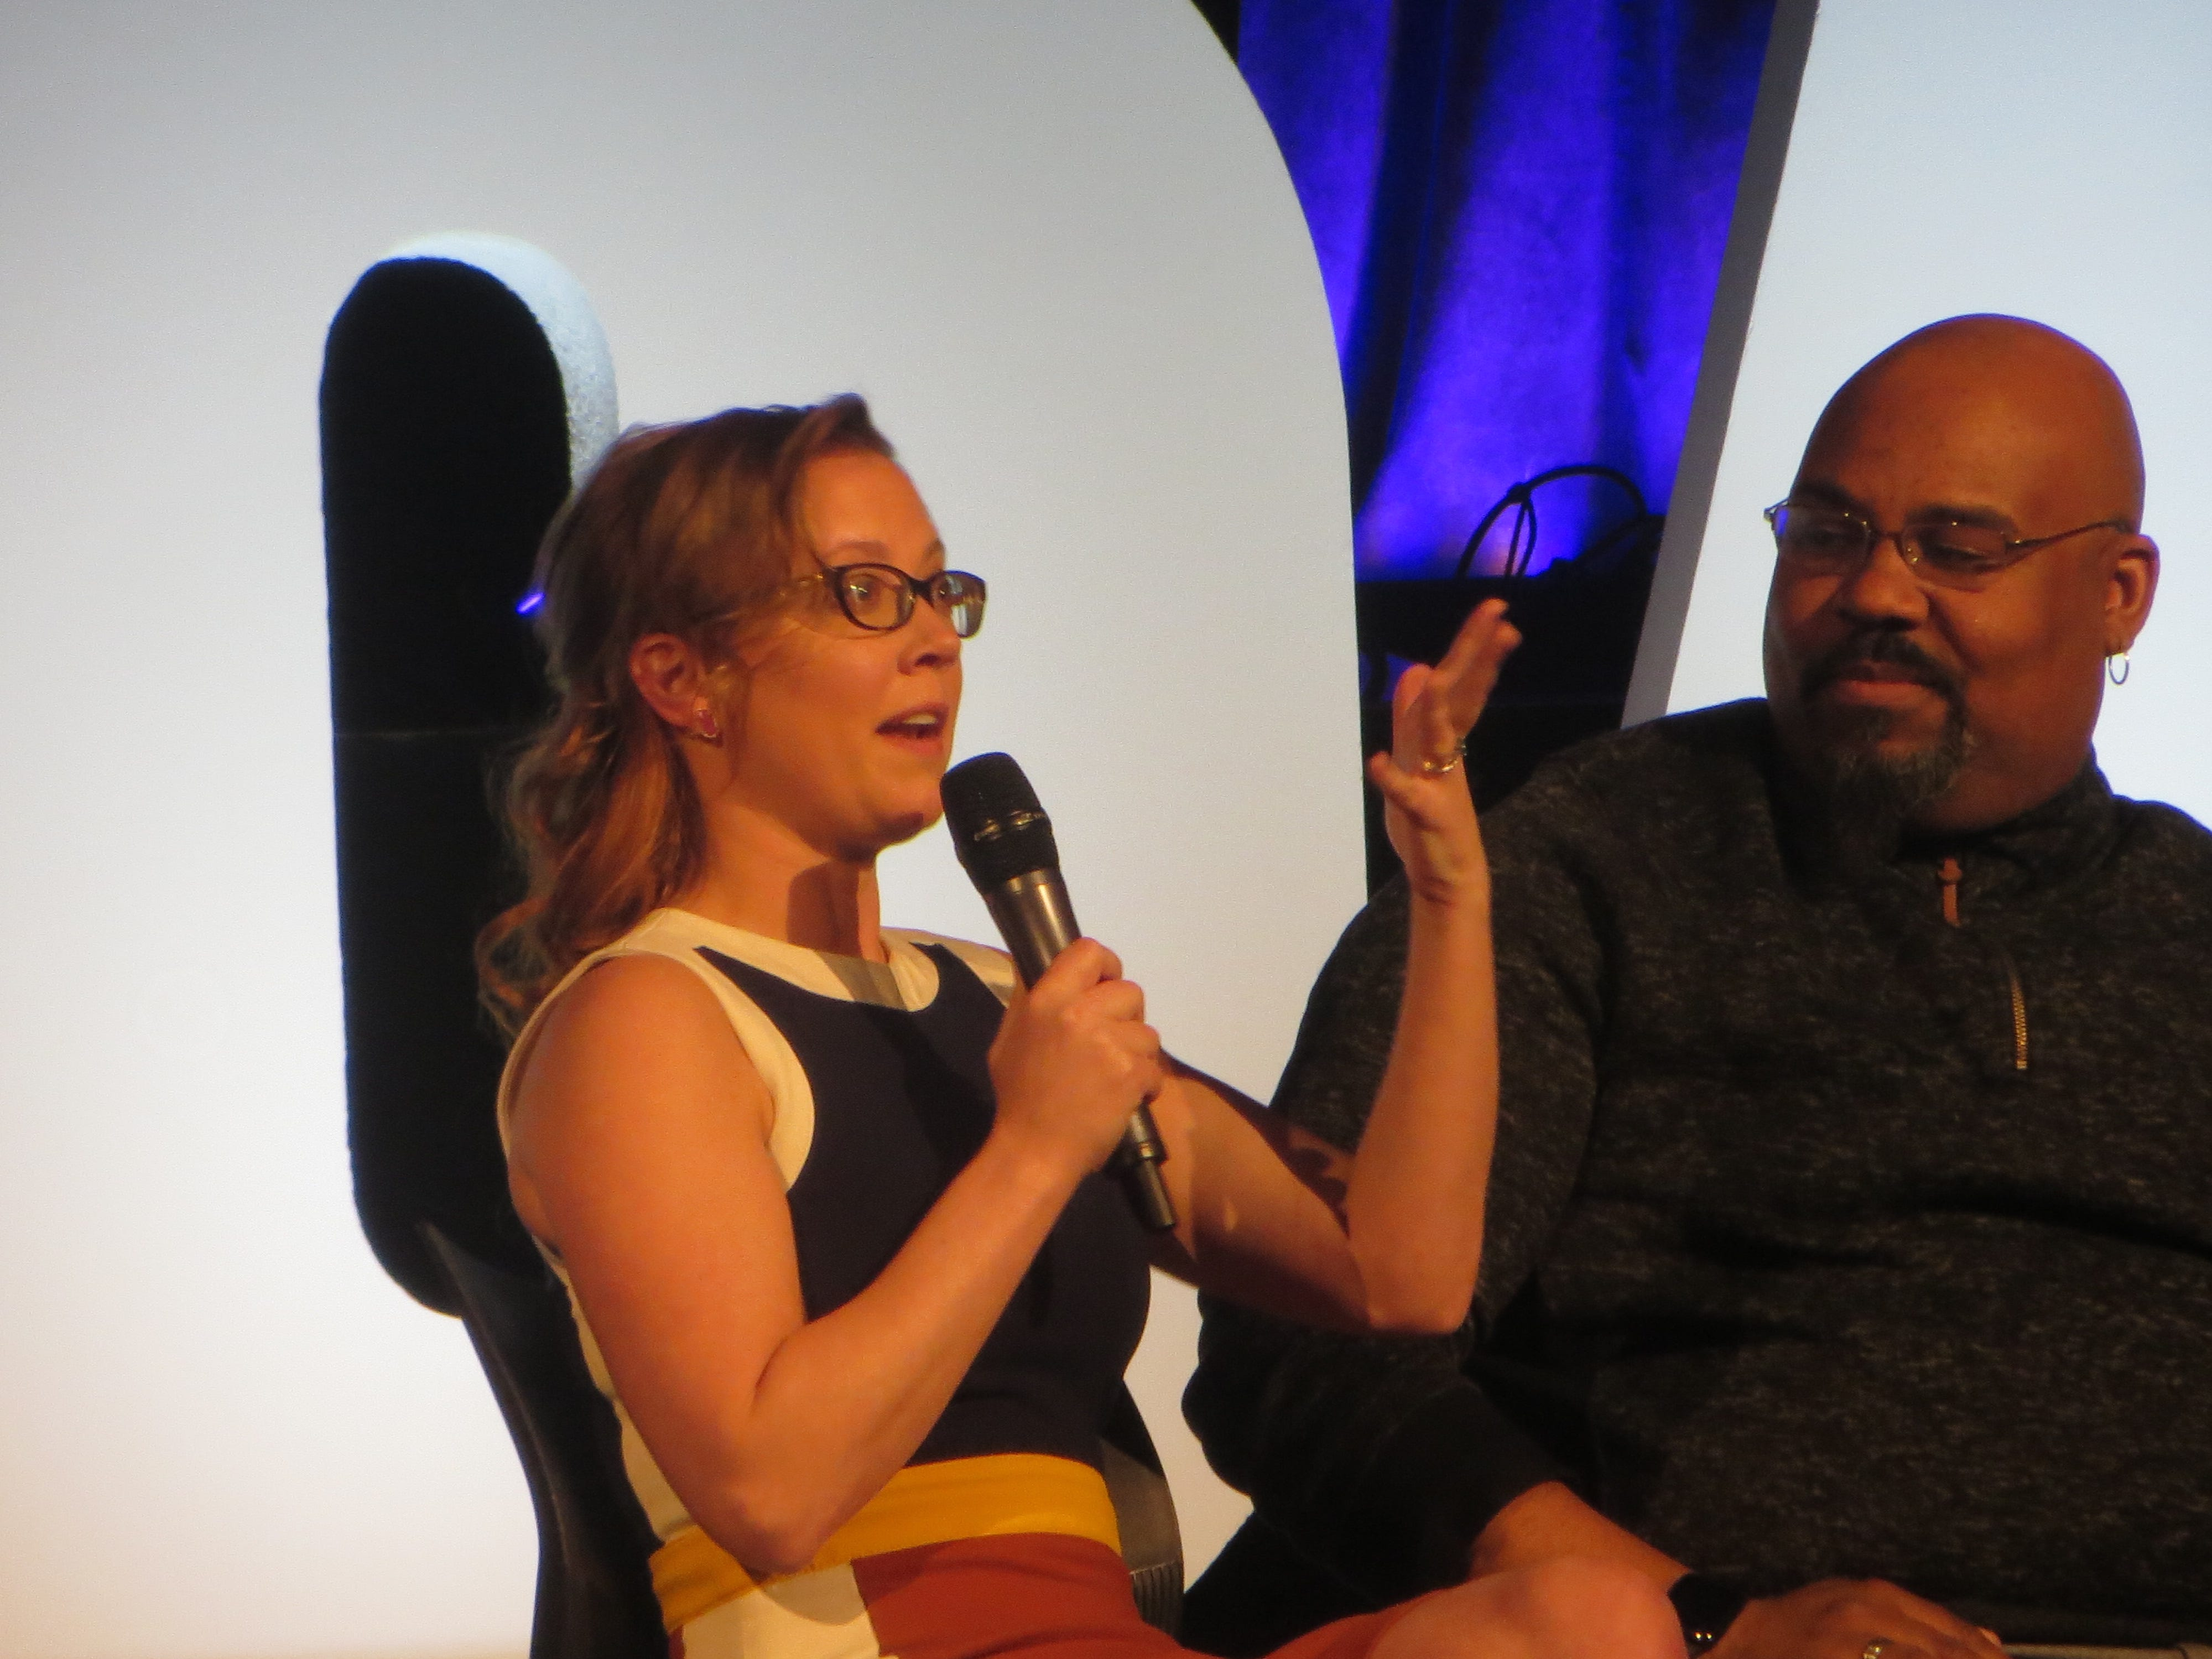 Patti Murin speaks during a Disney on Broadway at 25 panel at BroadwayCon 2019, held Jan. 11 to 13, 2019, at the New York Hilton Midtown in Manhattan.